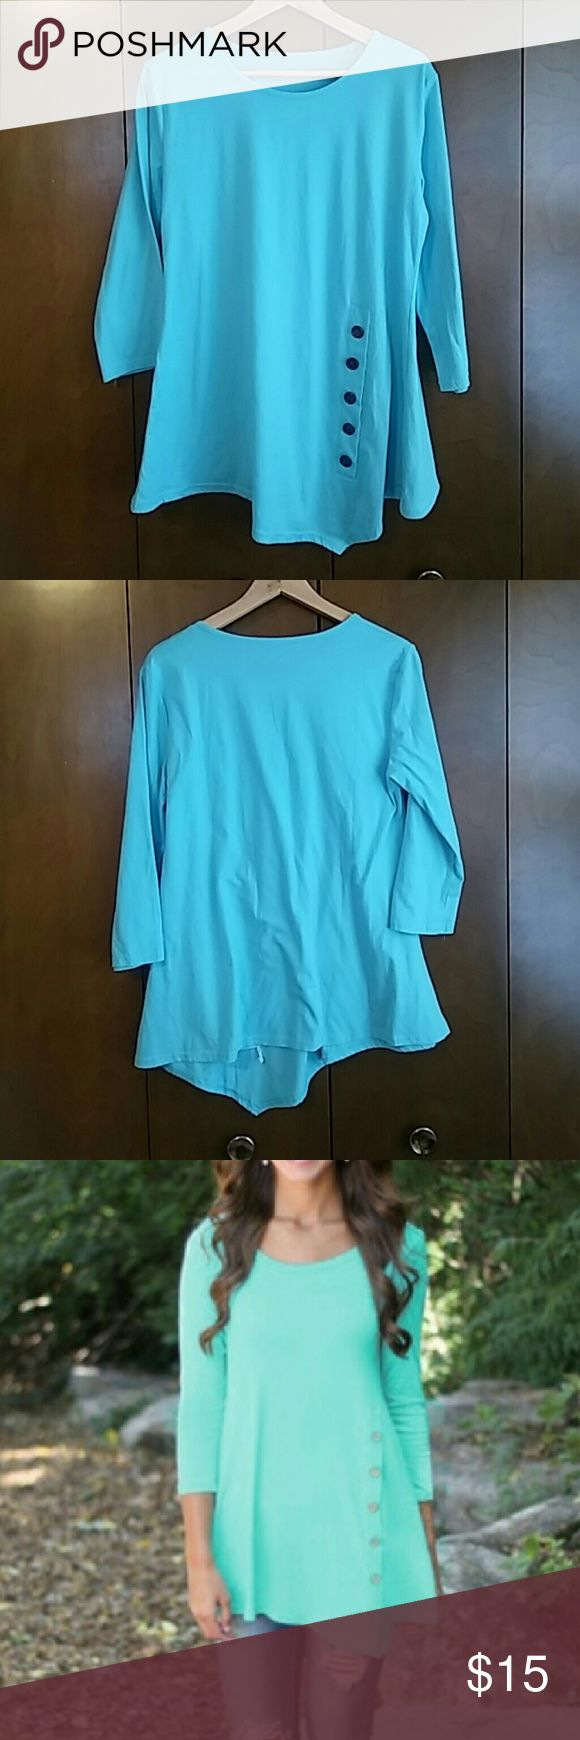 Shirt Asymmetrical Light blue/teal shirt with 3/4 length sleeves and brown buttons. The picture of it on the hangers are more true to the real color. NWOT. I bought it on line and it does not fit. I can not return it. It is an xl but fits more like a med-large. Tops Blouses